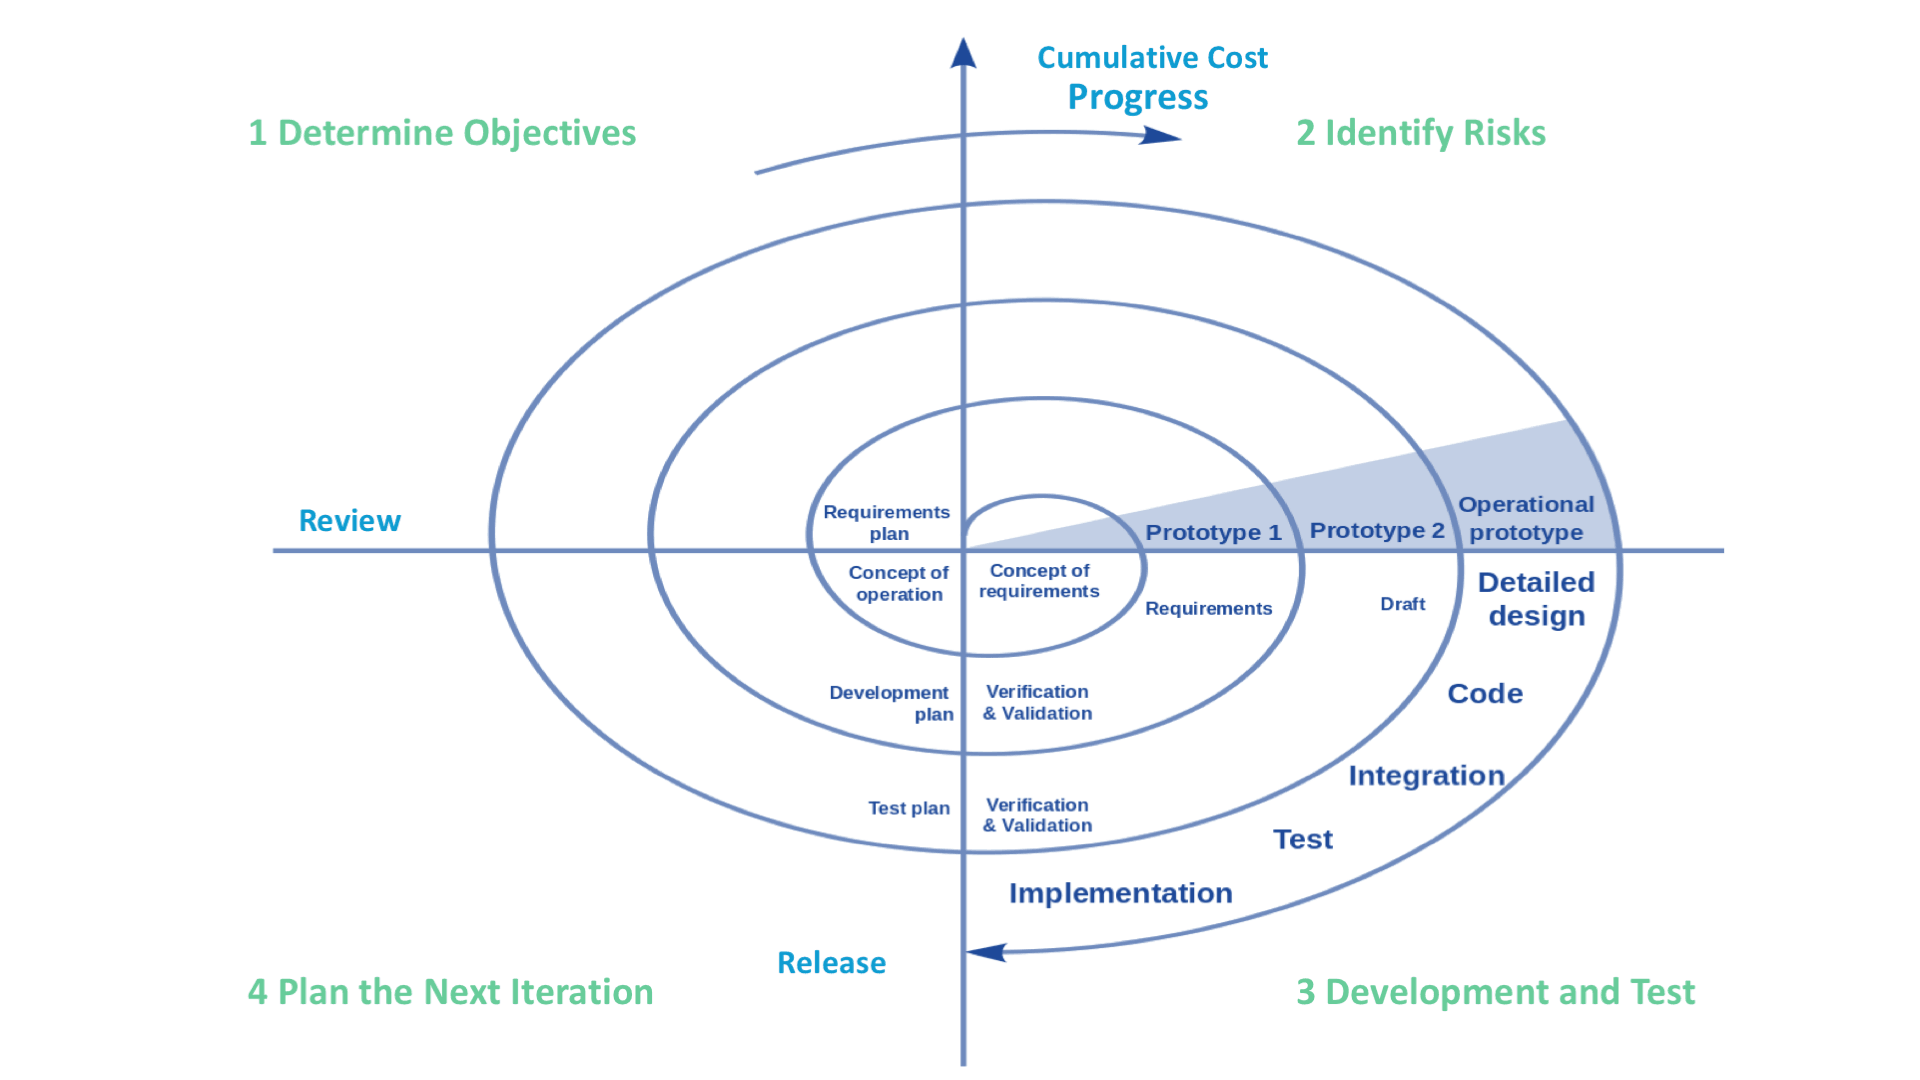 SDLC Models Explained: Agile, Waterfall, V-Shaped, Iterative